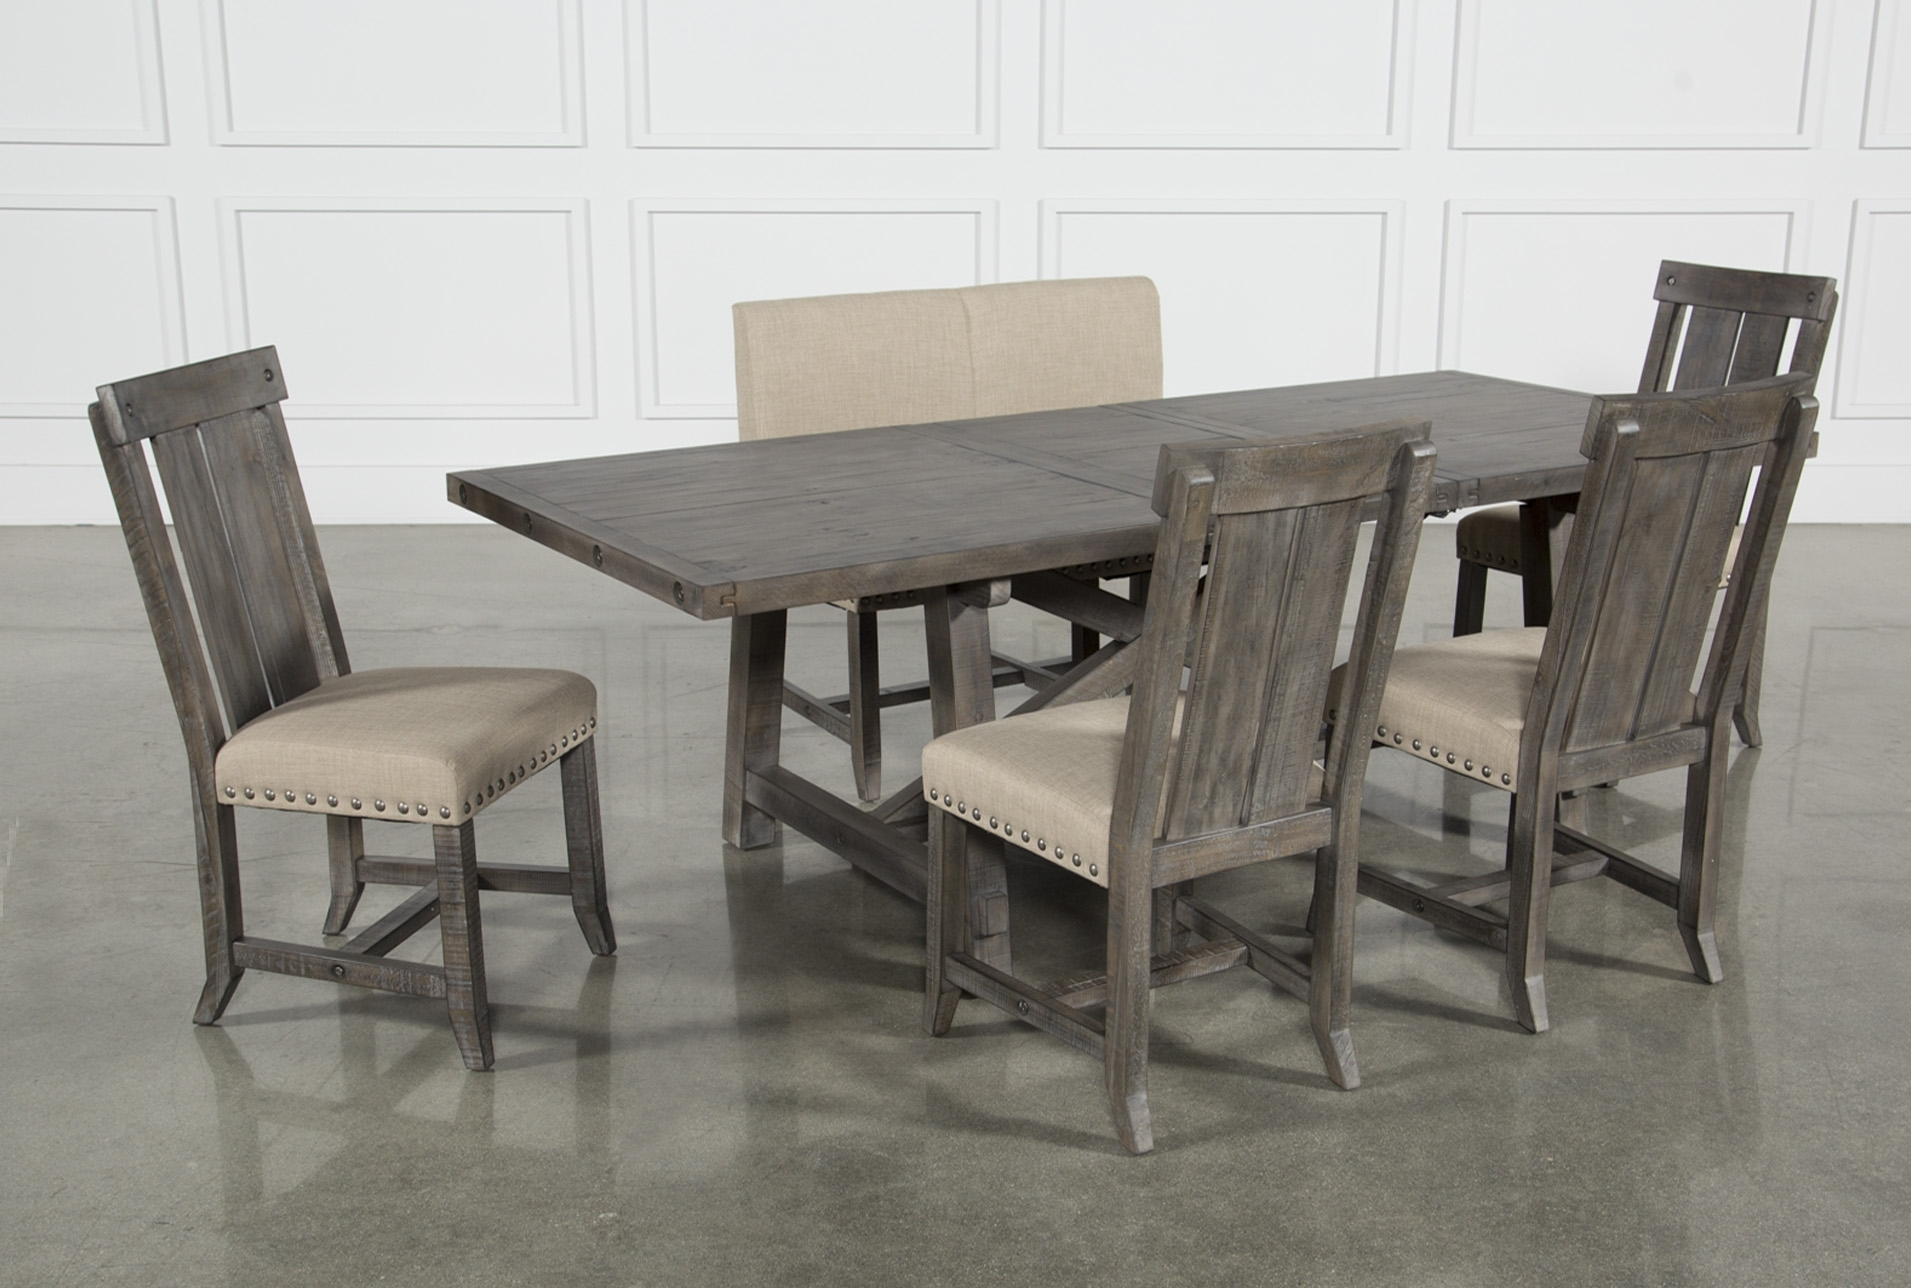 Besteneer Rectangular Dining Room Table Dark Gray – Signat In Best And Newest Jaxon Grey Round Extension Dining Tables (Image 3 of 20)